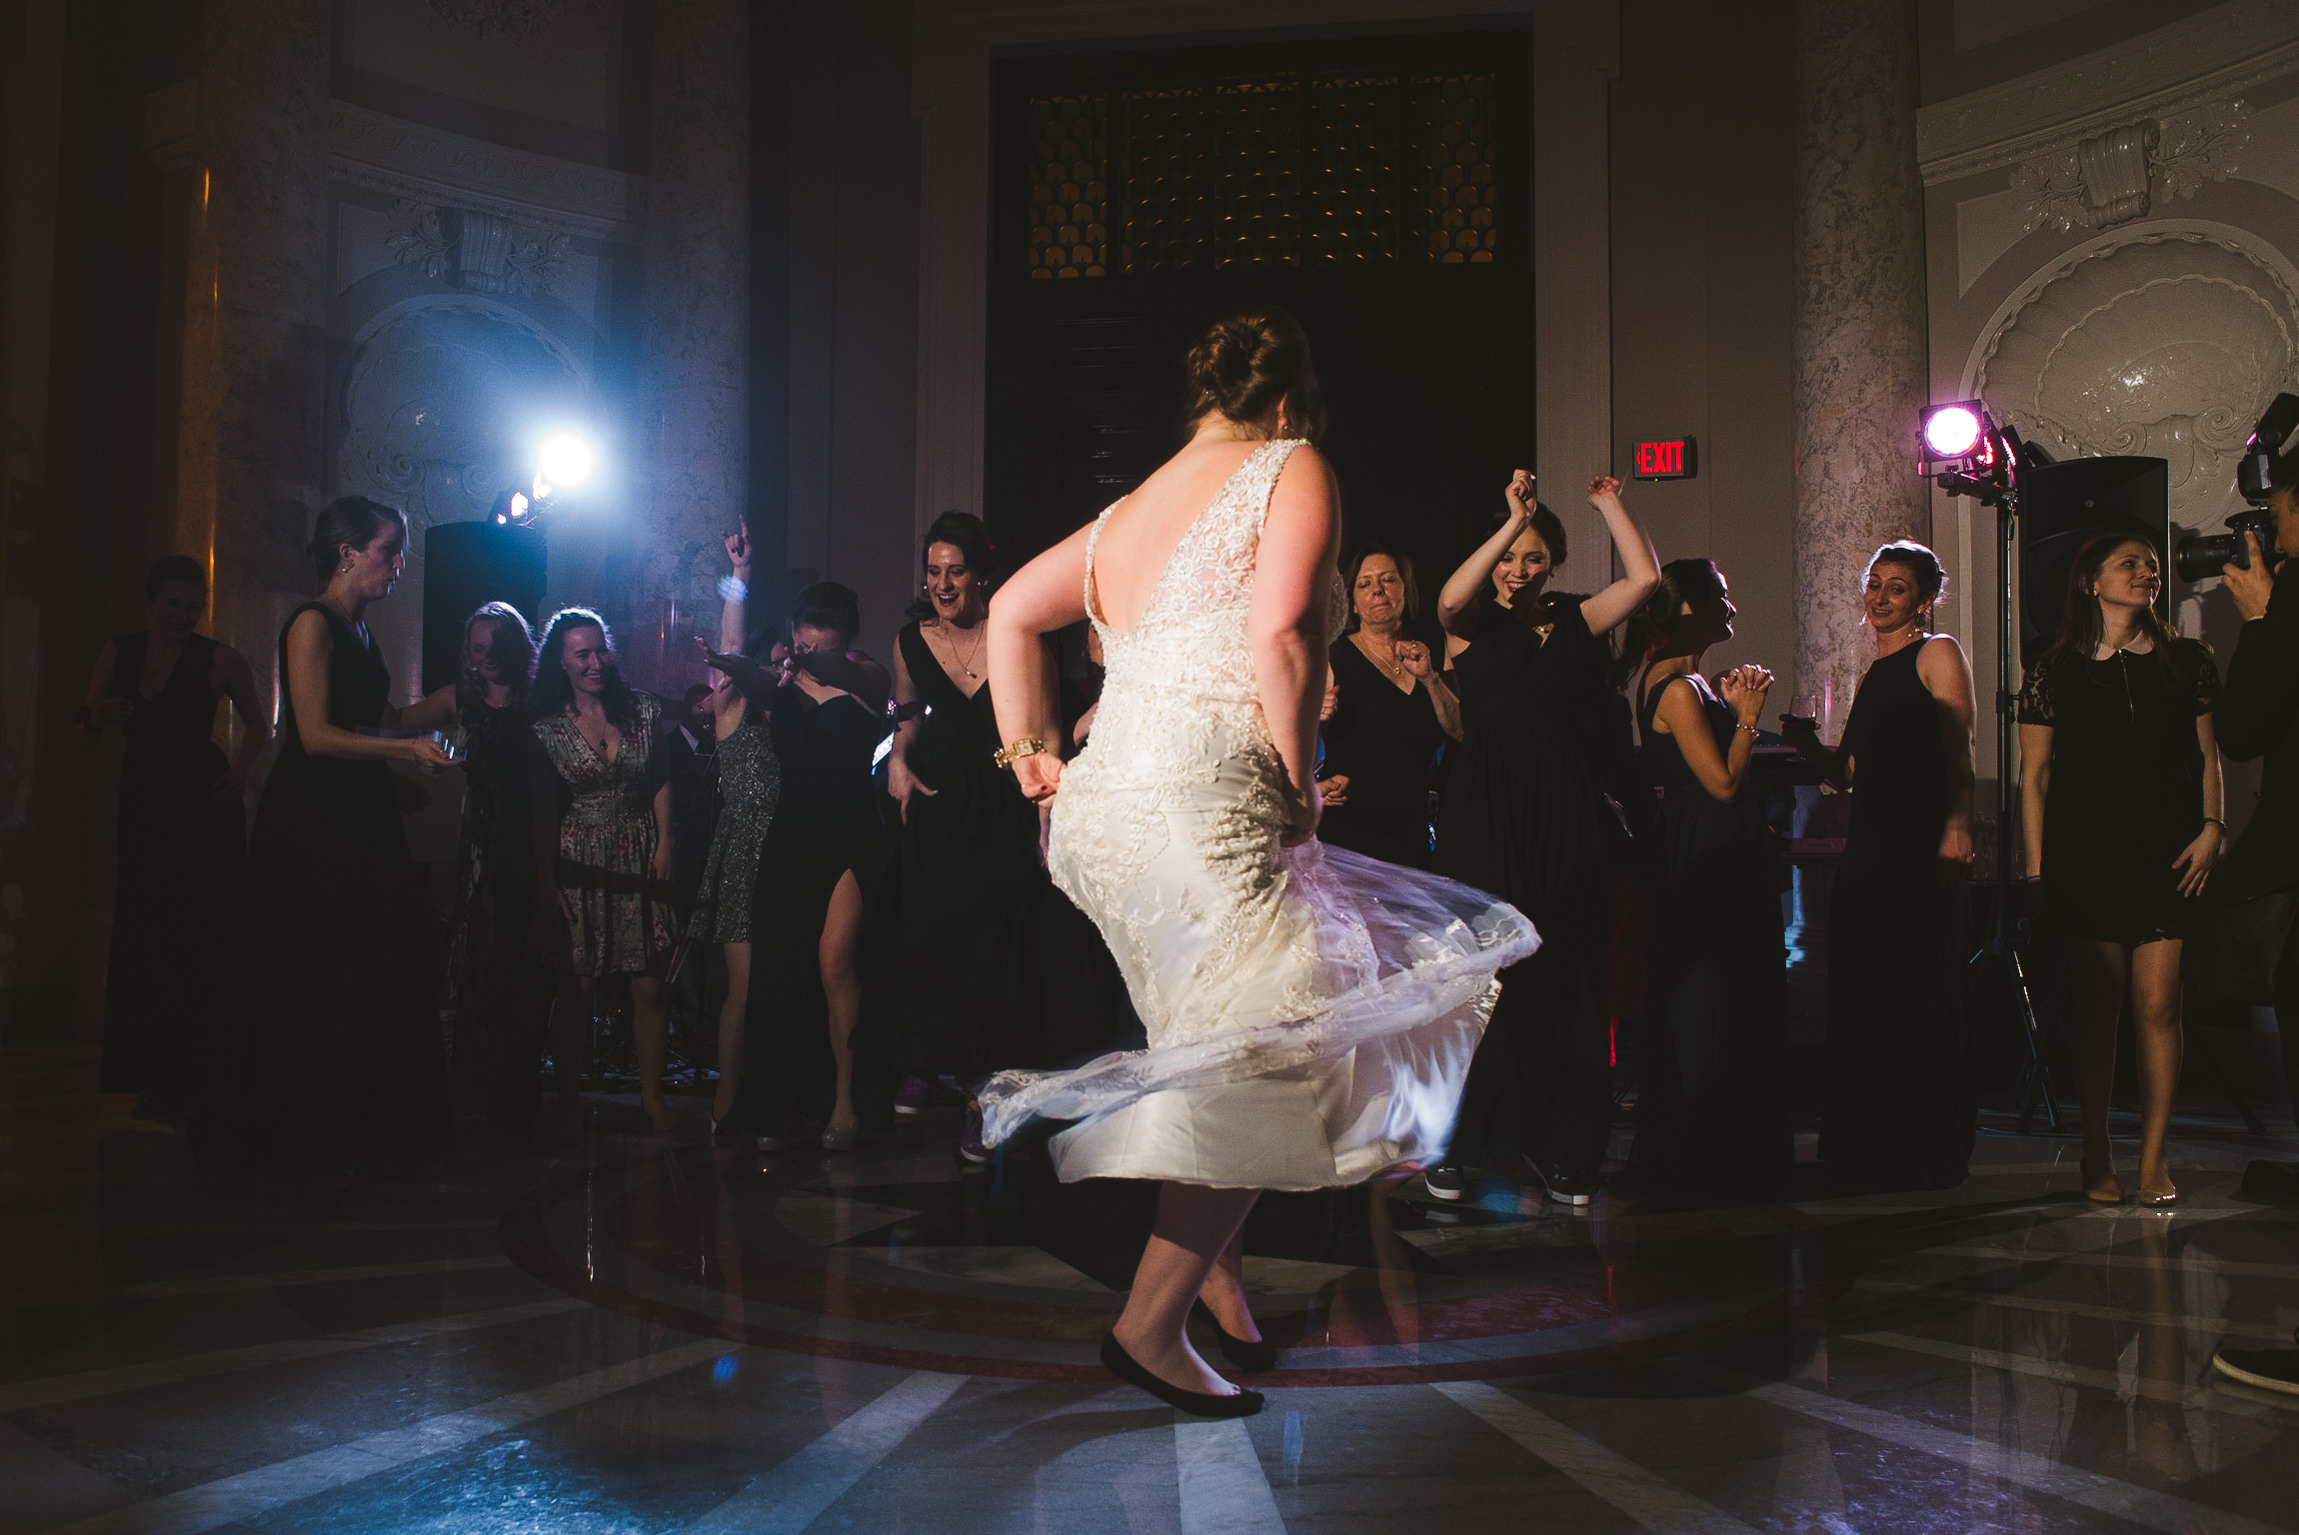 Carnegie Institution for Science Wedding Photographer Mantas Kubilinskas-36.jpg